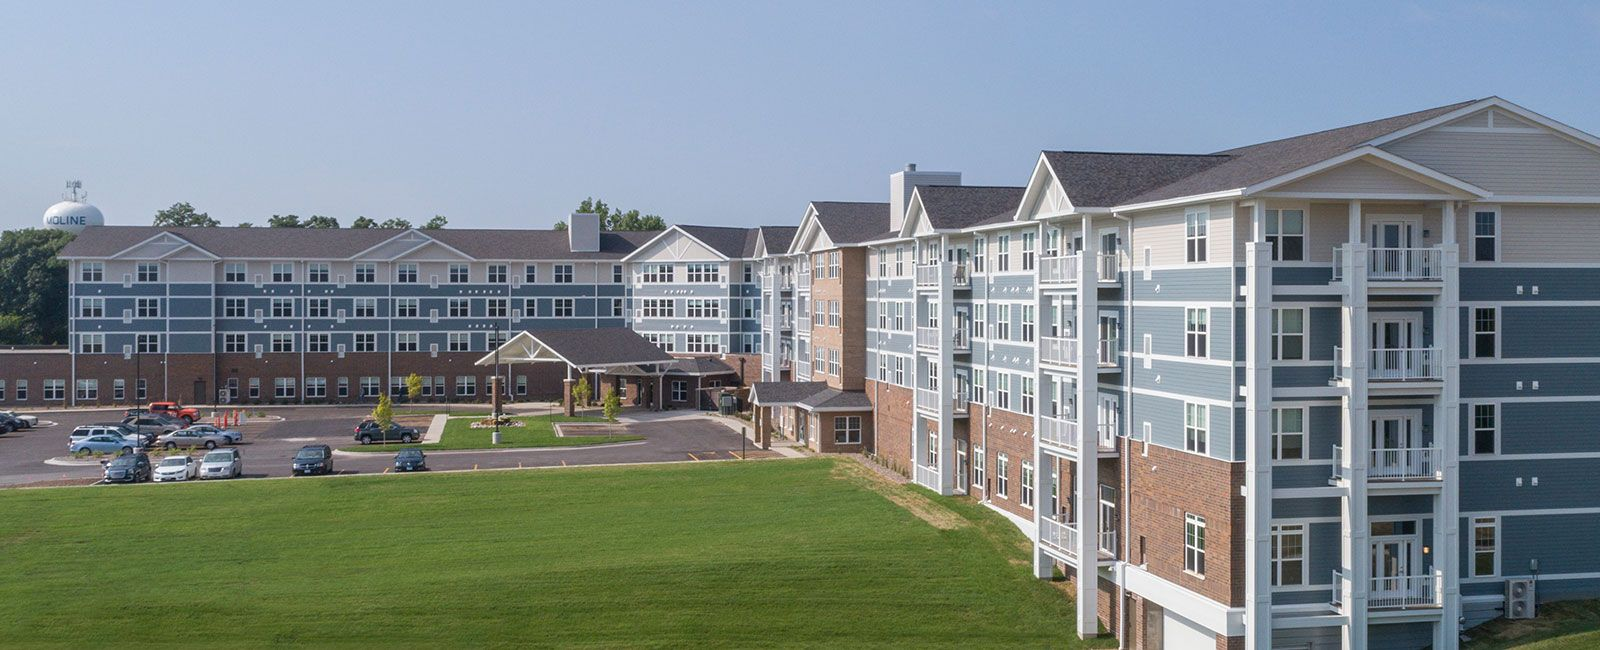 Overlook Village Retirement Community